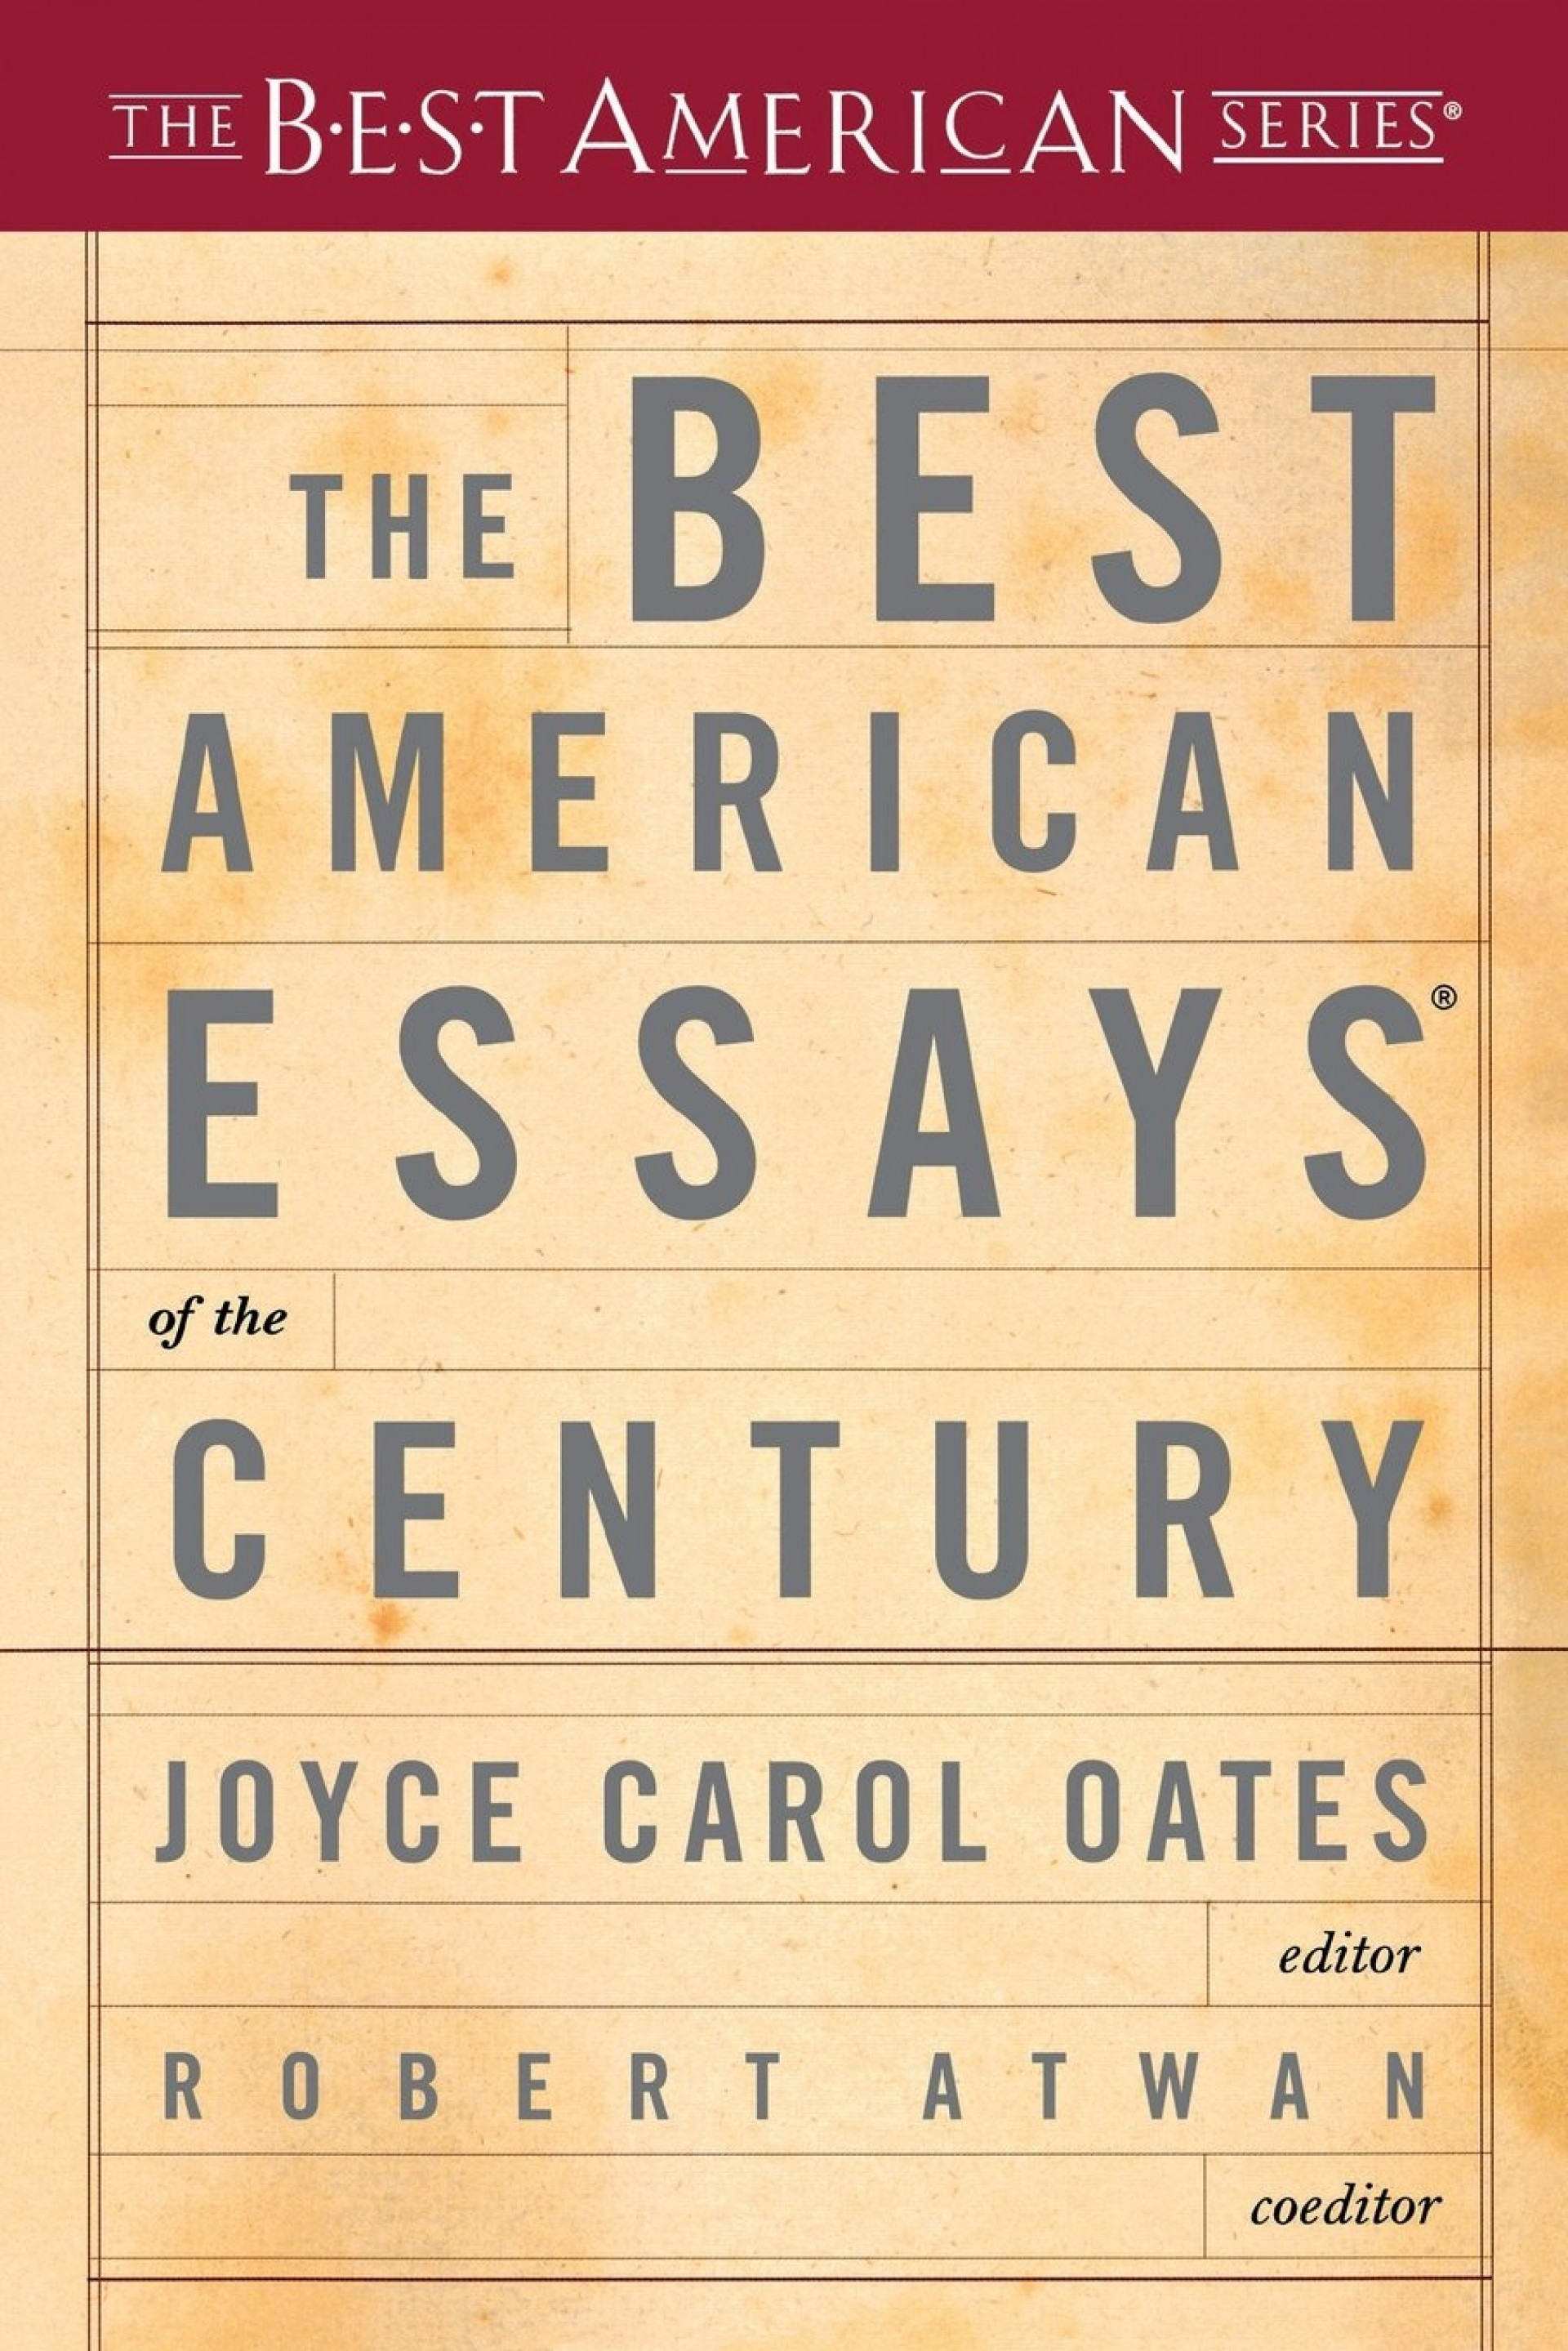 002 The Best American Essays Essay Example Wonderful Of Century Table Contents 2013 Pdf Download 1920